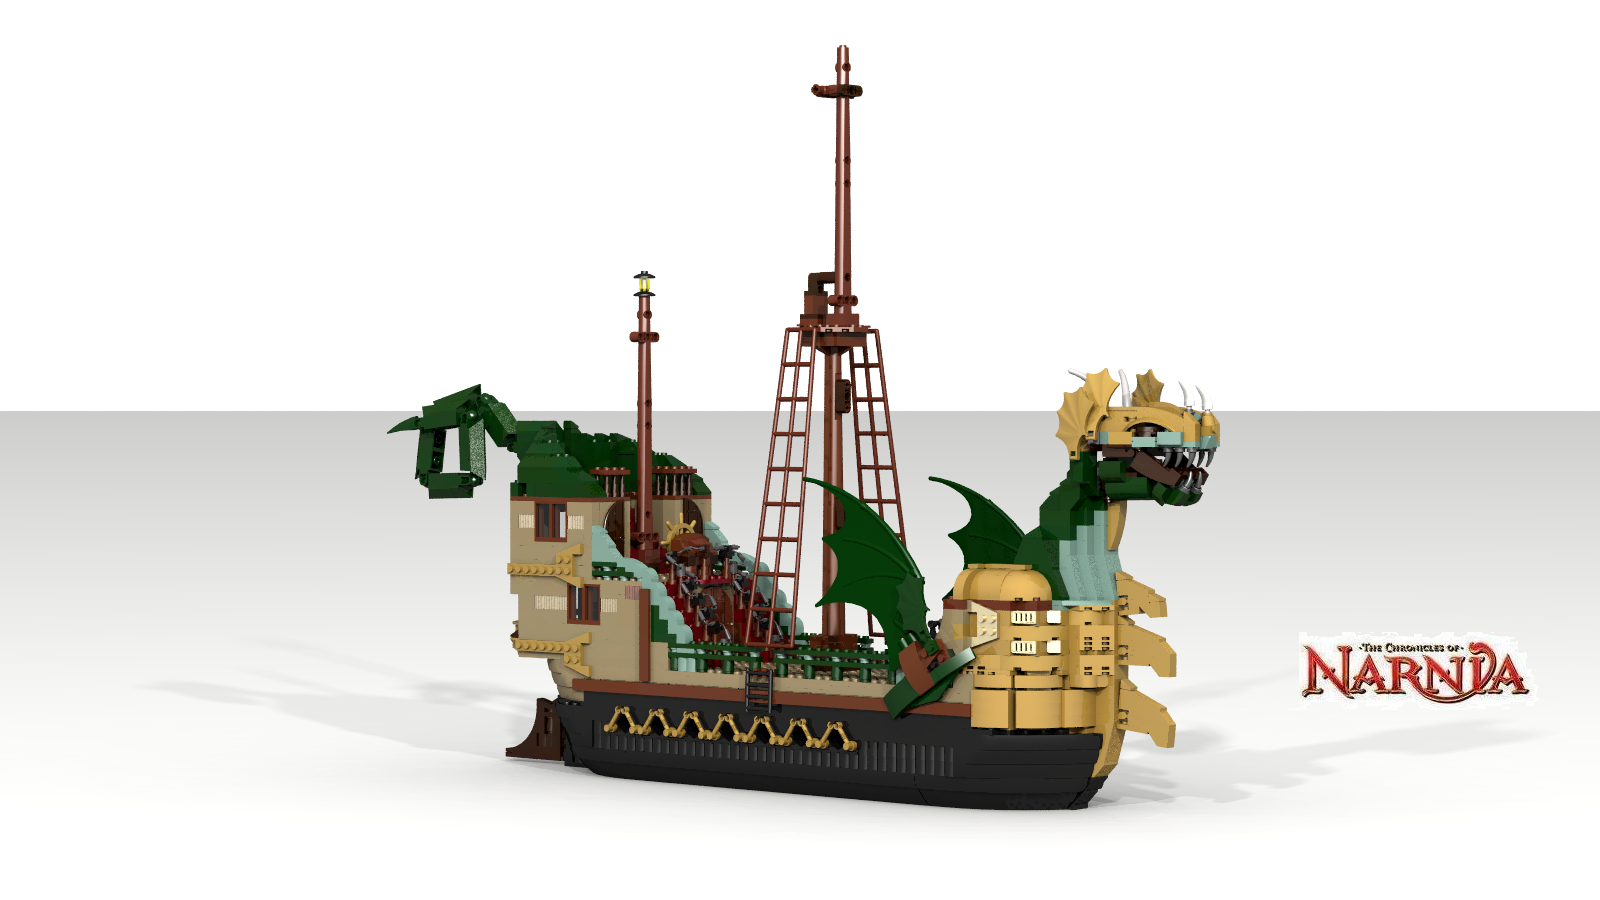 lego ideas product ideas the chronicles of narnia the dawn treader